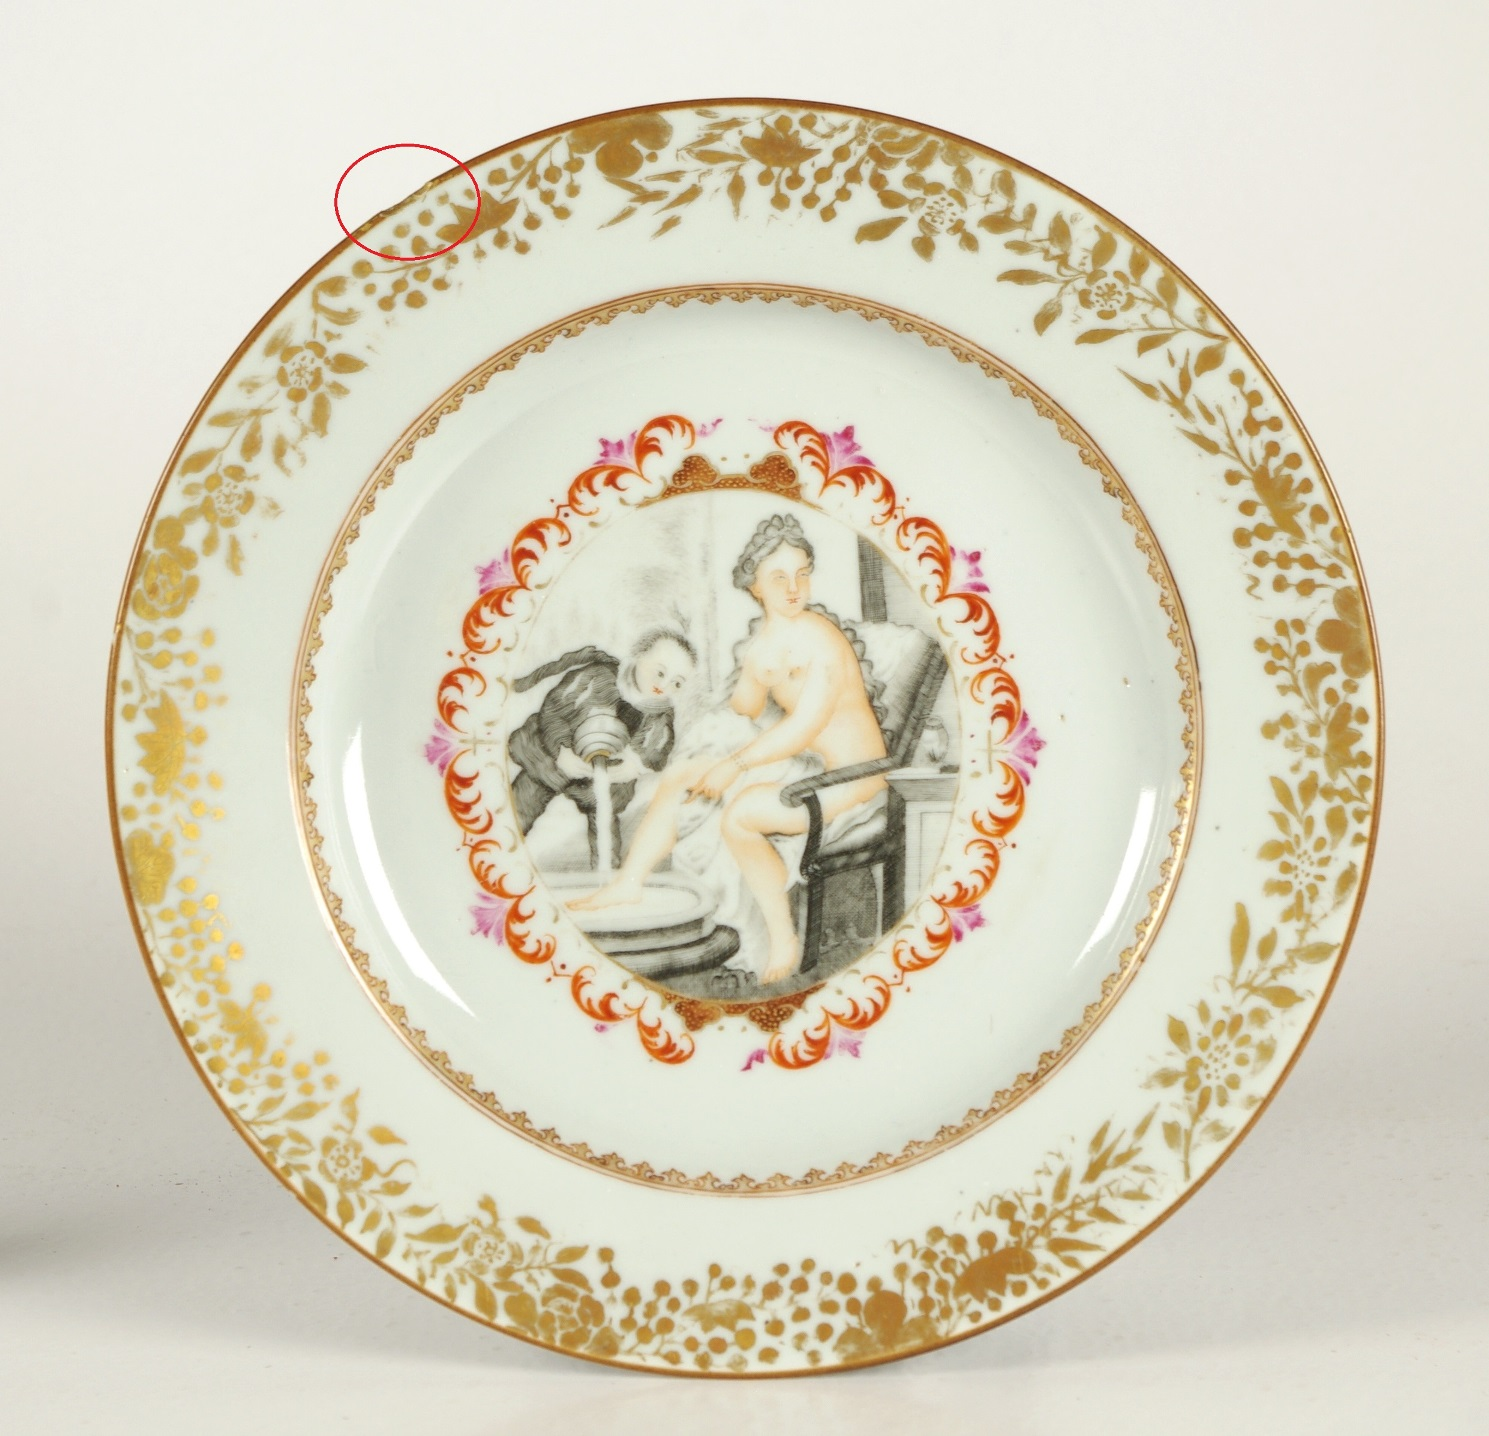 View 4: Chinese Export Plate Made for the Continental Market